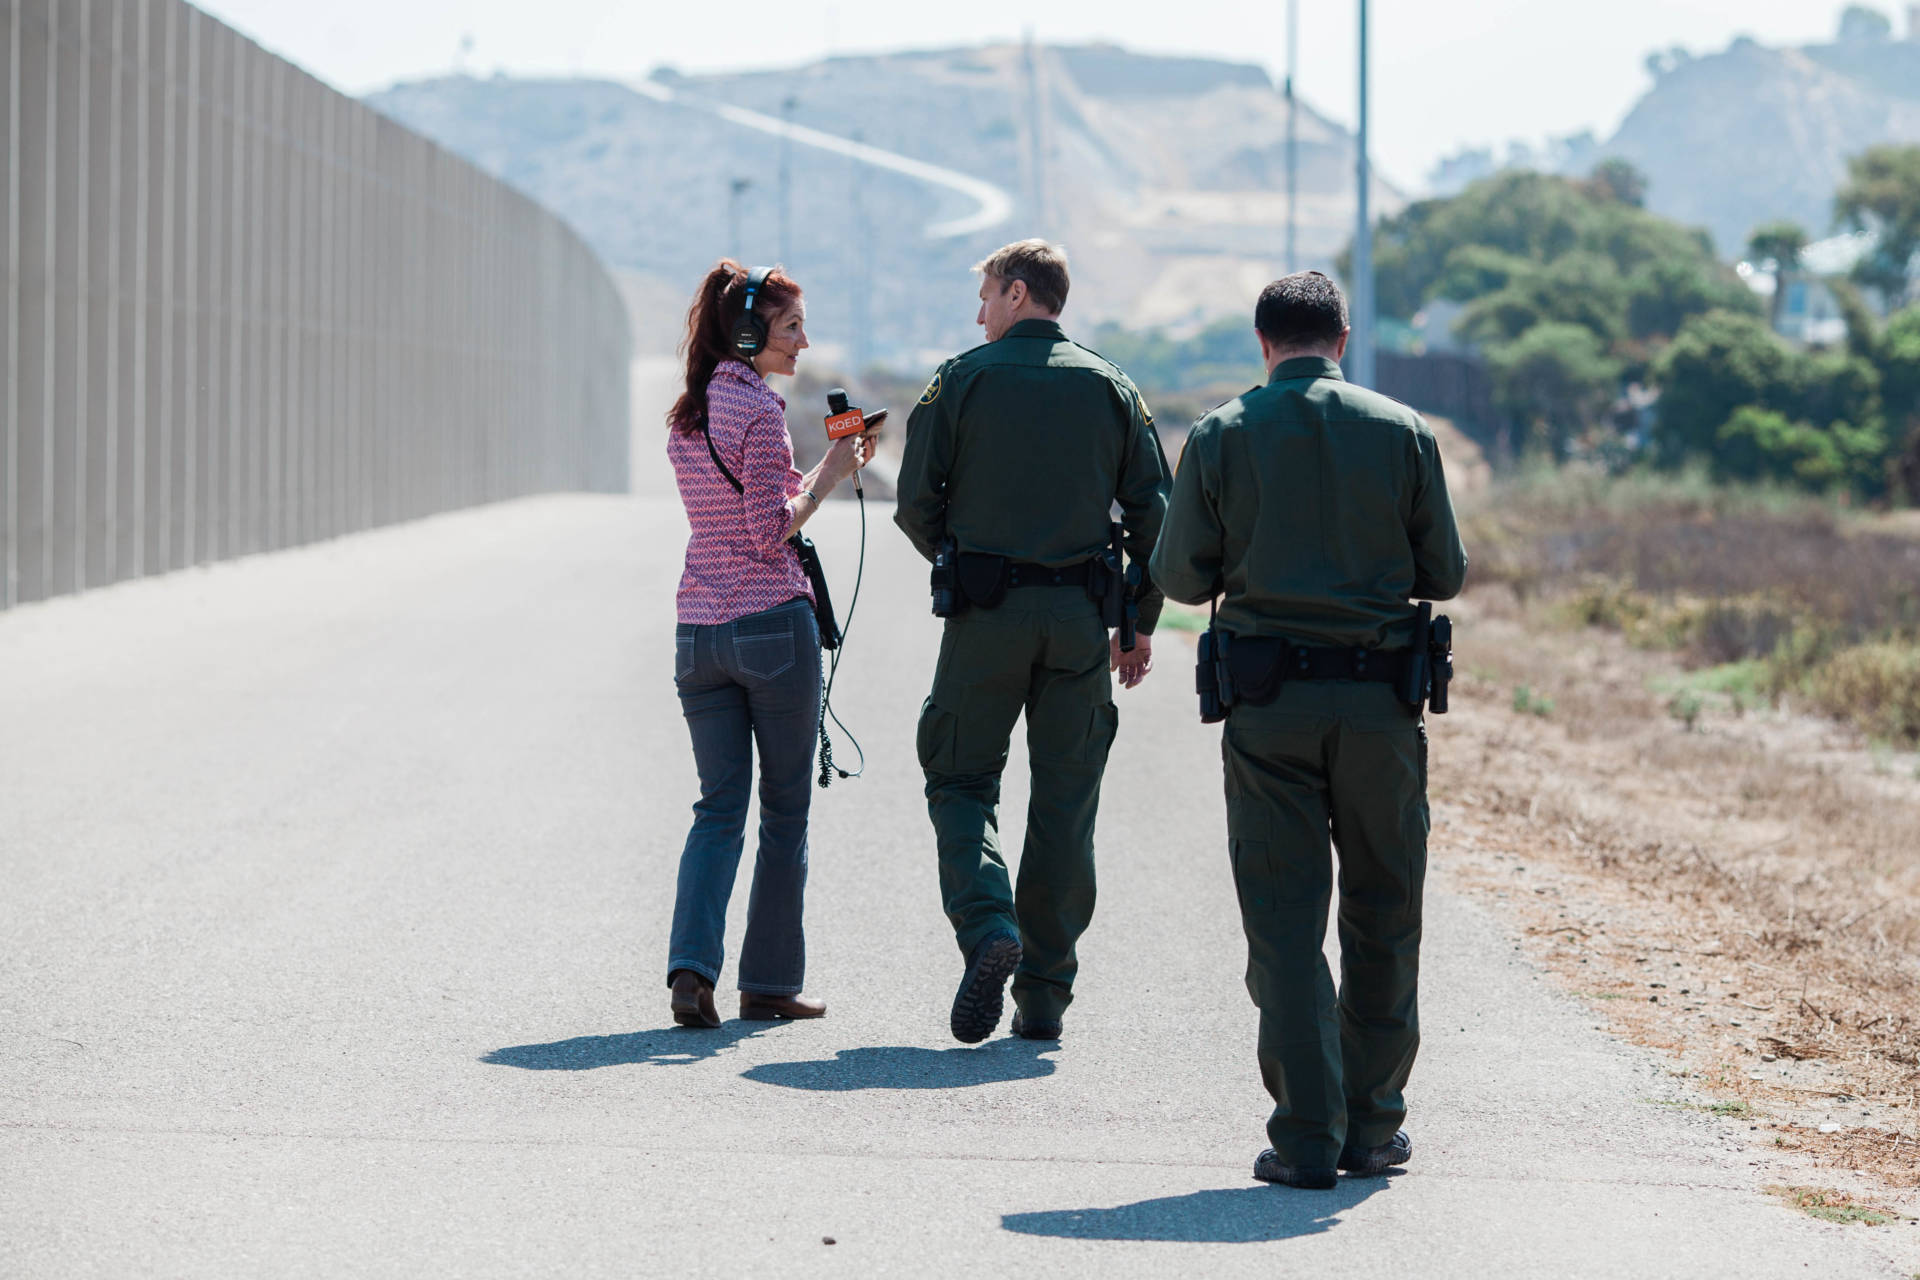 The California Report's Polly Stryker interviewing Chief Patrol Agent Rodney Scott along the San Diego - Tijuana border. (KQED/Drehsler)